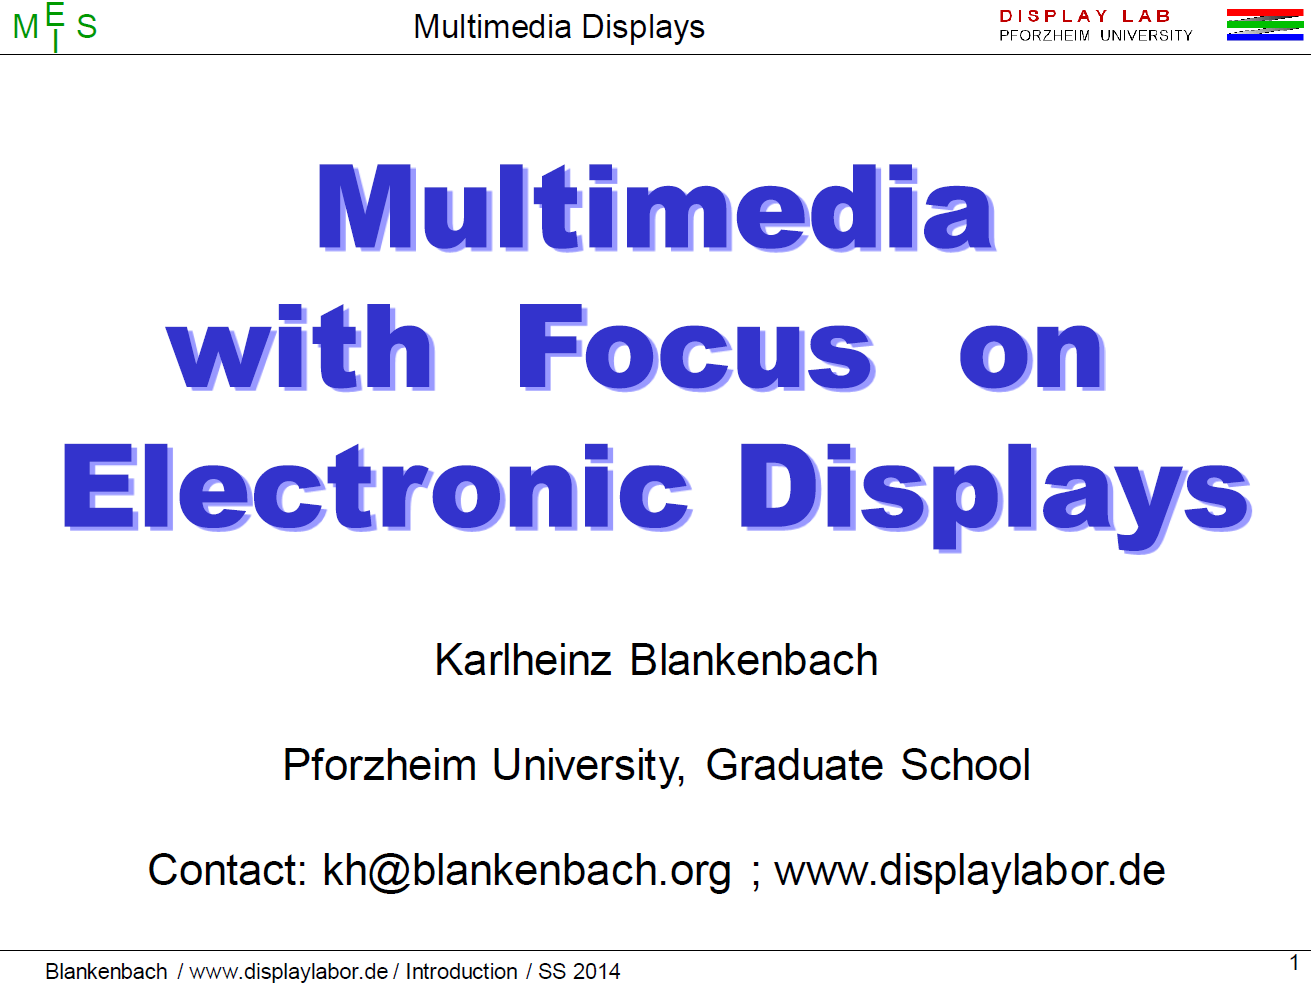 Blankenbach Multimedia with Focus on Electronic Displays